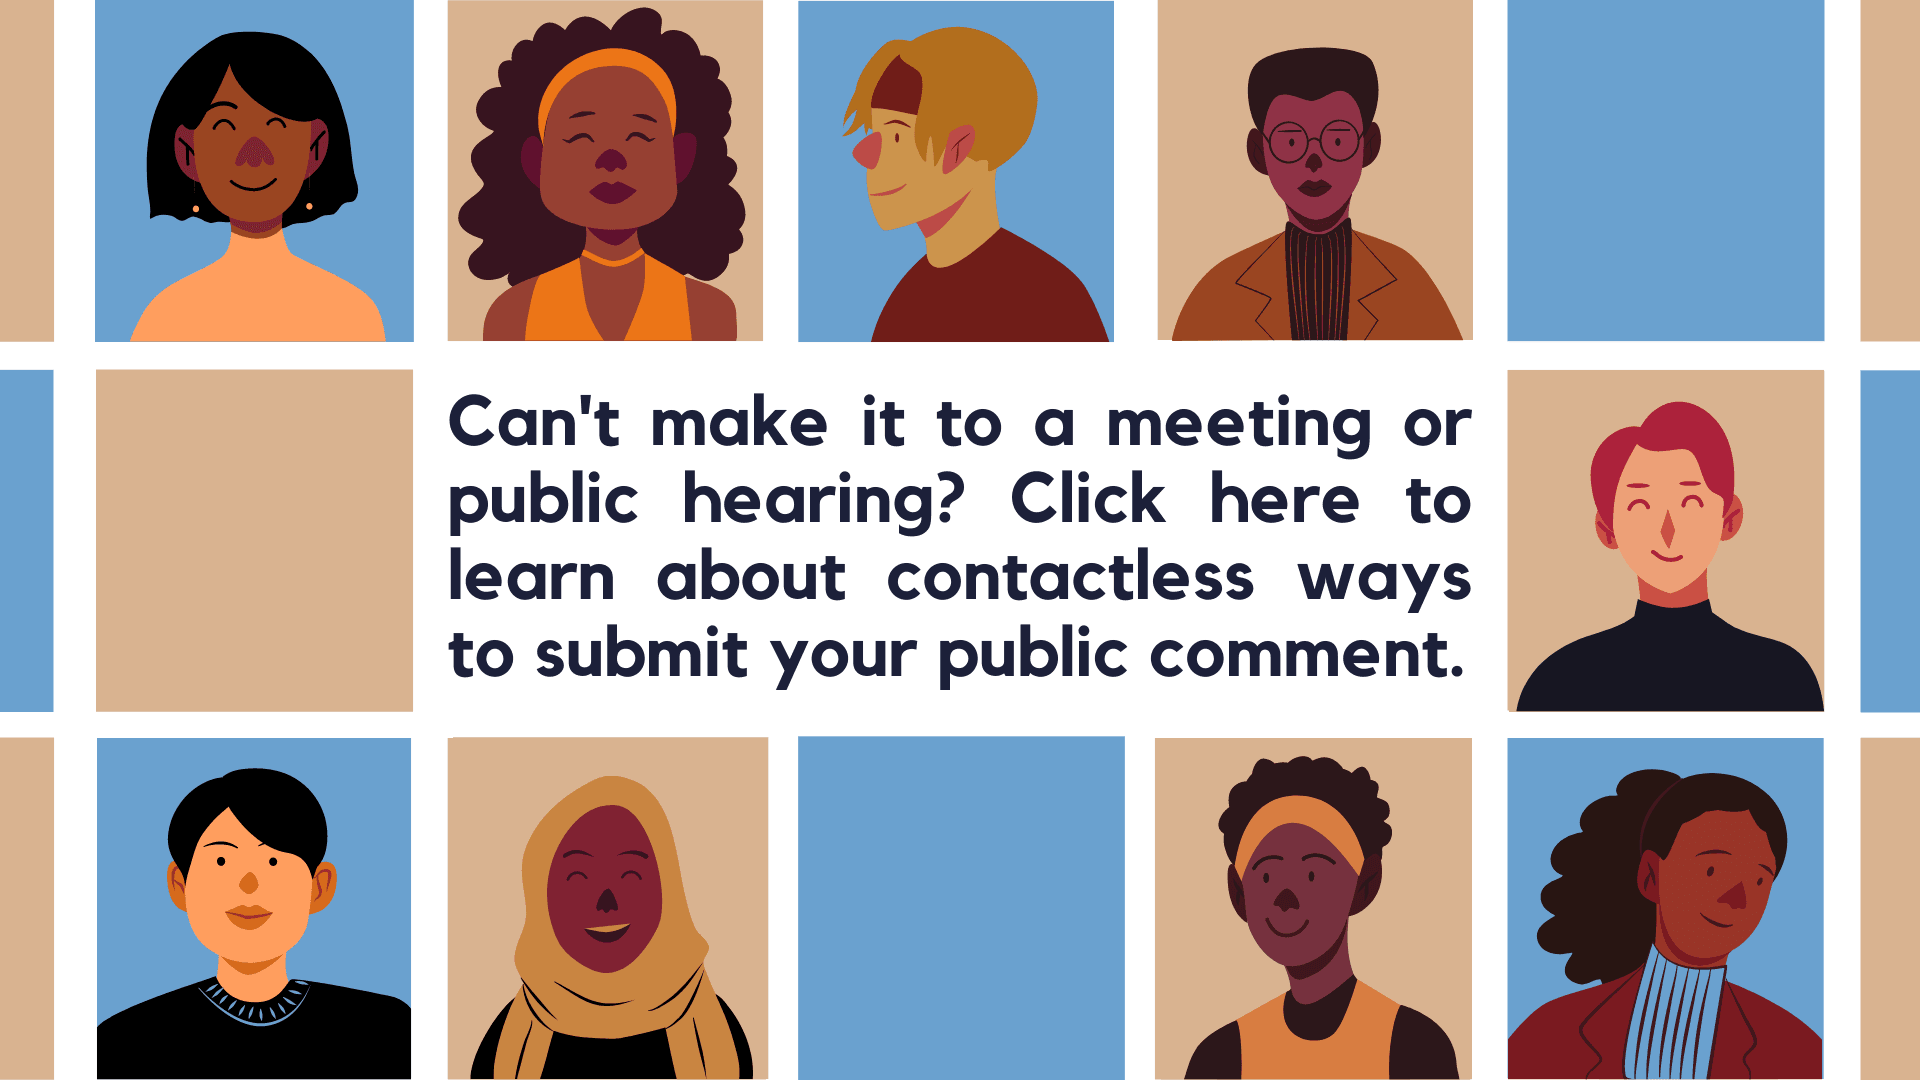 Click here to learn more about contactless ways to submit a public comment.